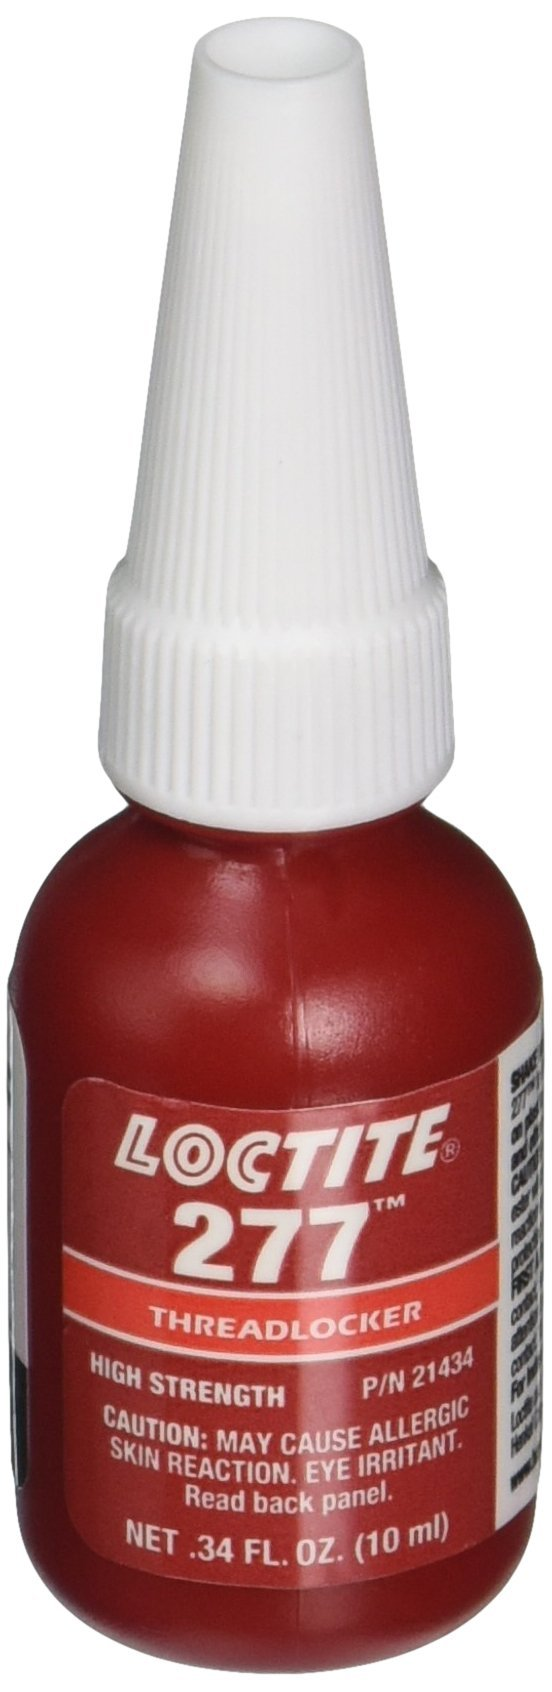 Loctite 277 442-21434 10ml High Strength Threadlocker, Red Color